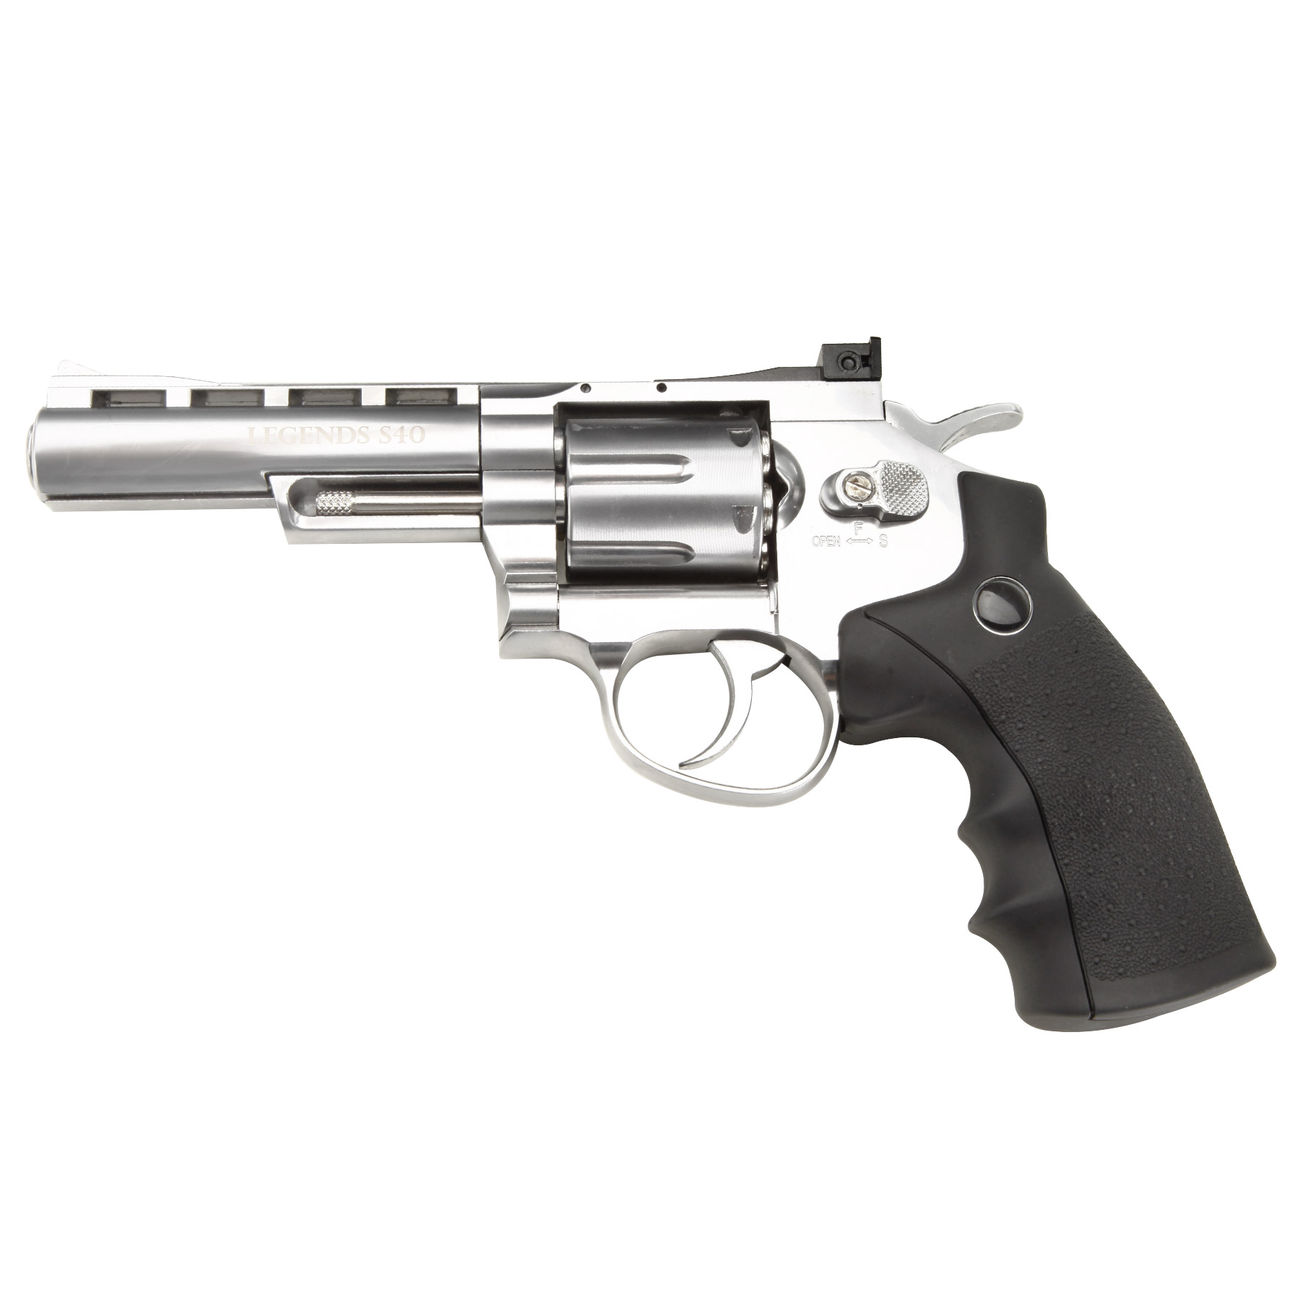 Legends S40 CO2 Revolver 4 Zoll Kal. 4,5mm Diabolo chrom Vollmetall 5